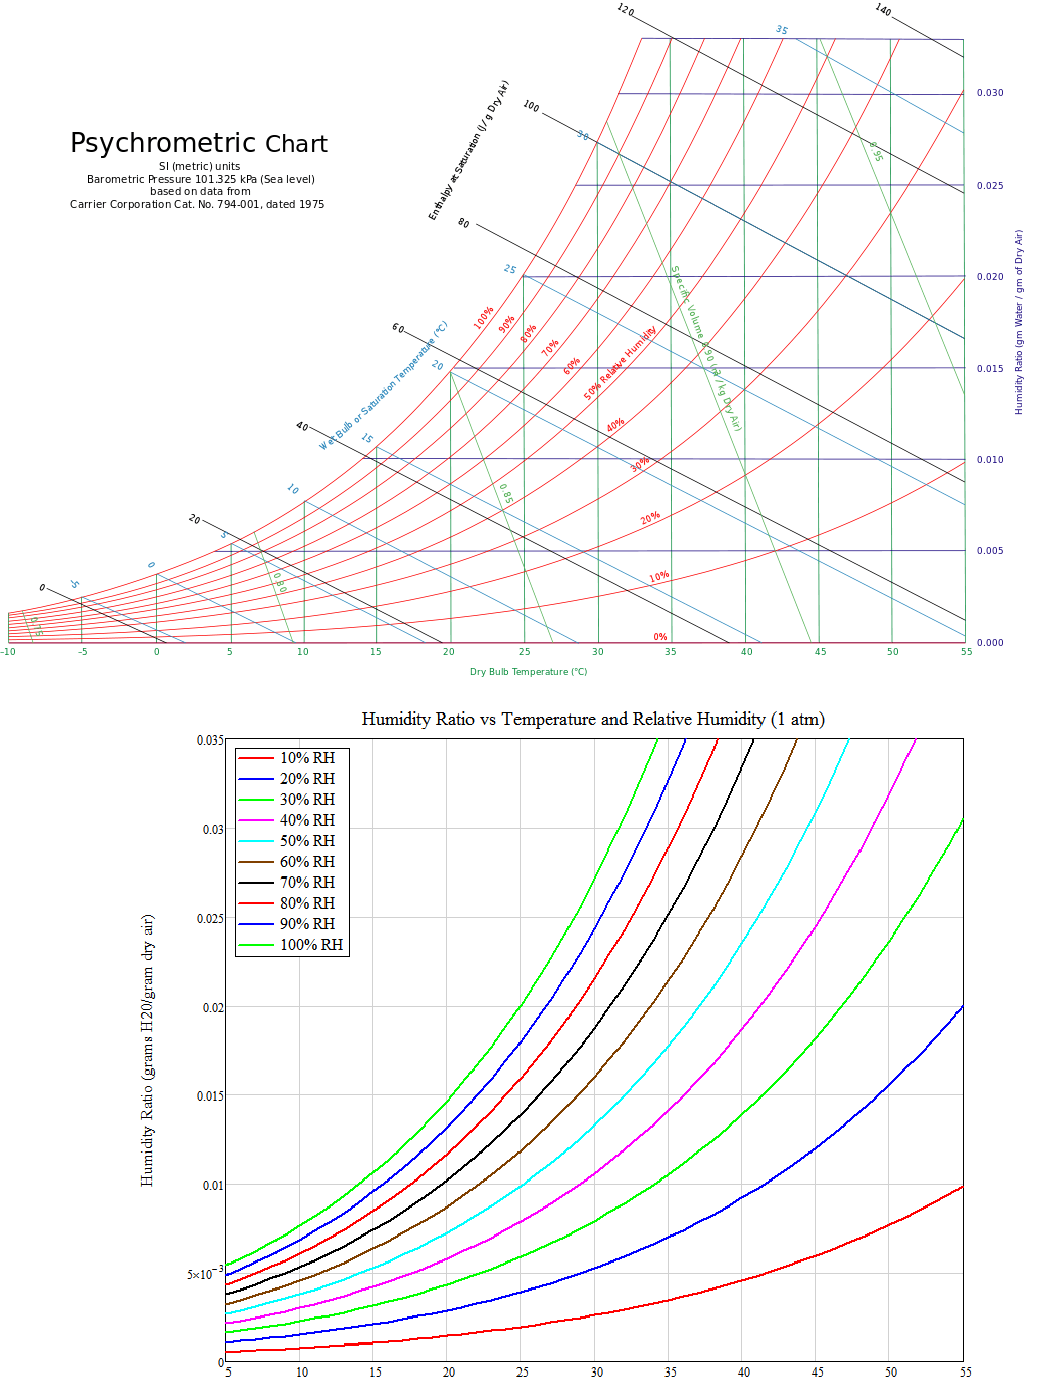 Converting Specific Humidity To Relative Humidity